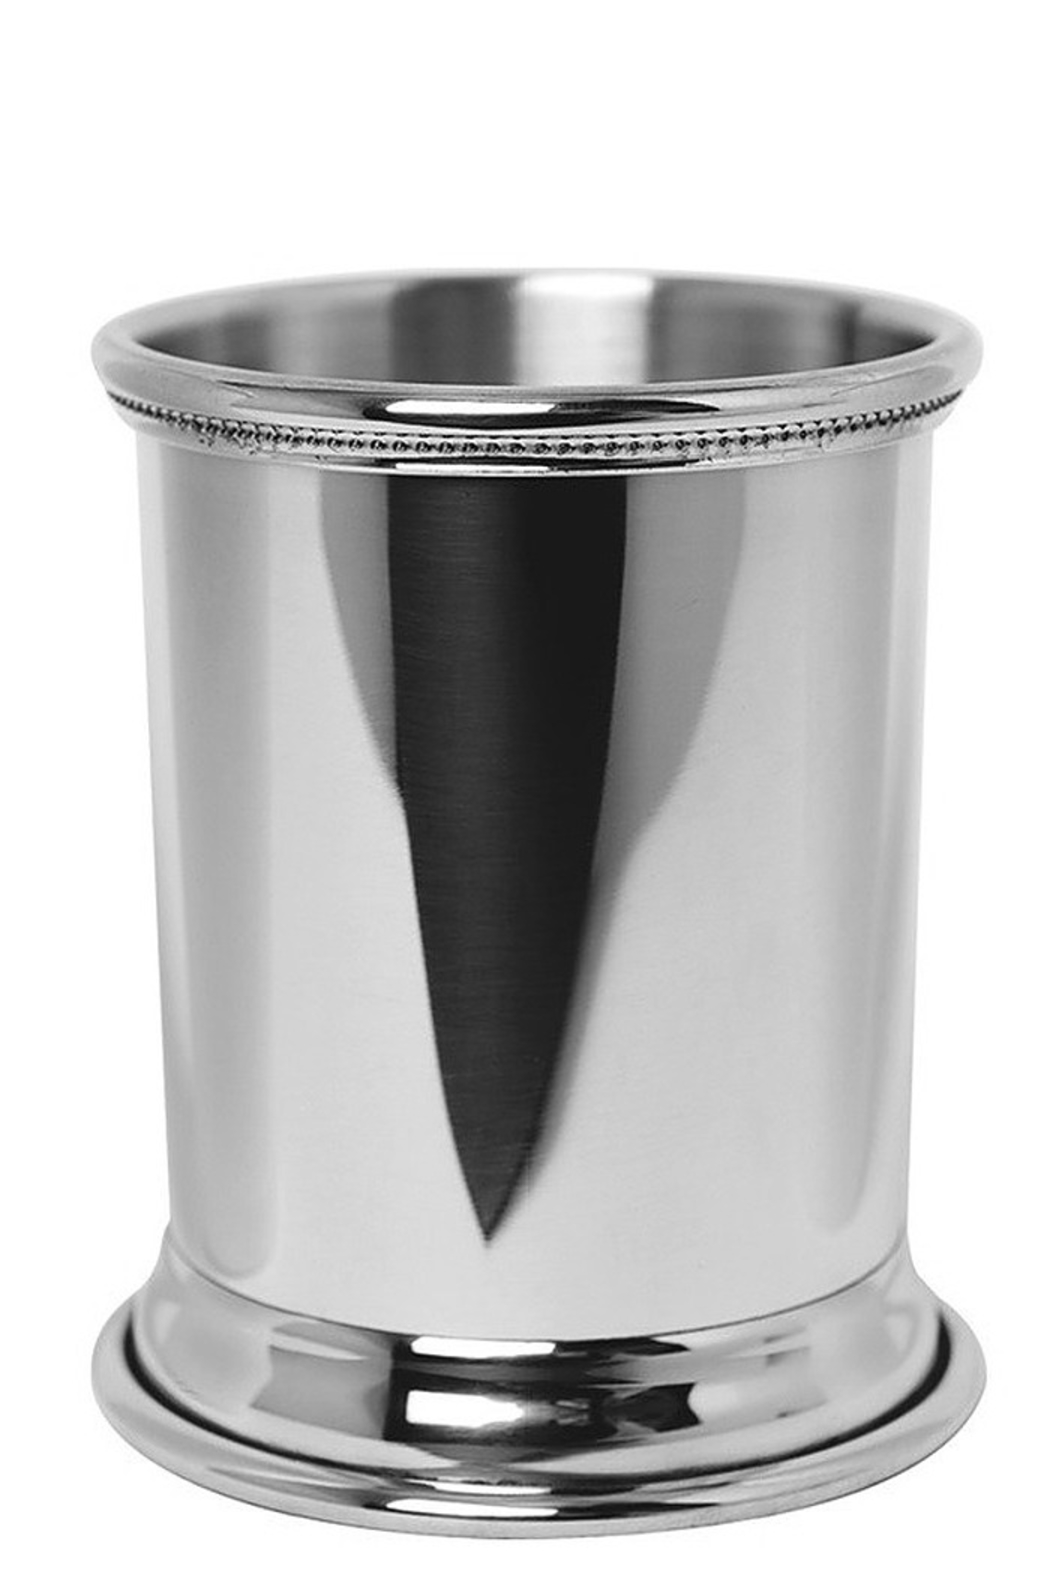 The Birds Nest PEWTER LOUISIANA JULEP CUP - 12 OZ - Main Image